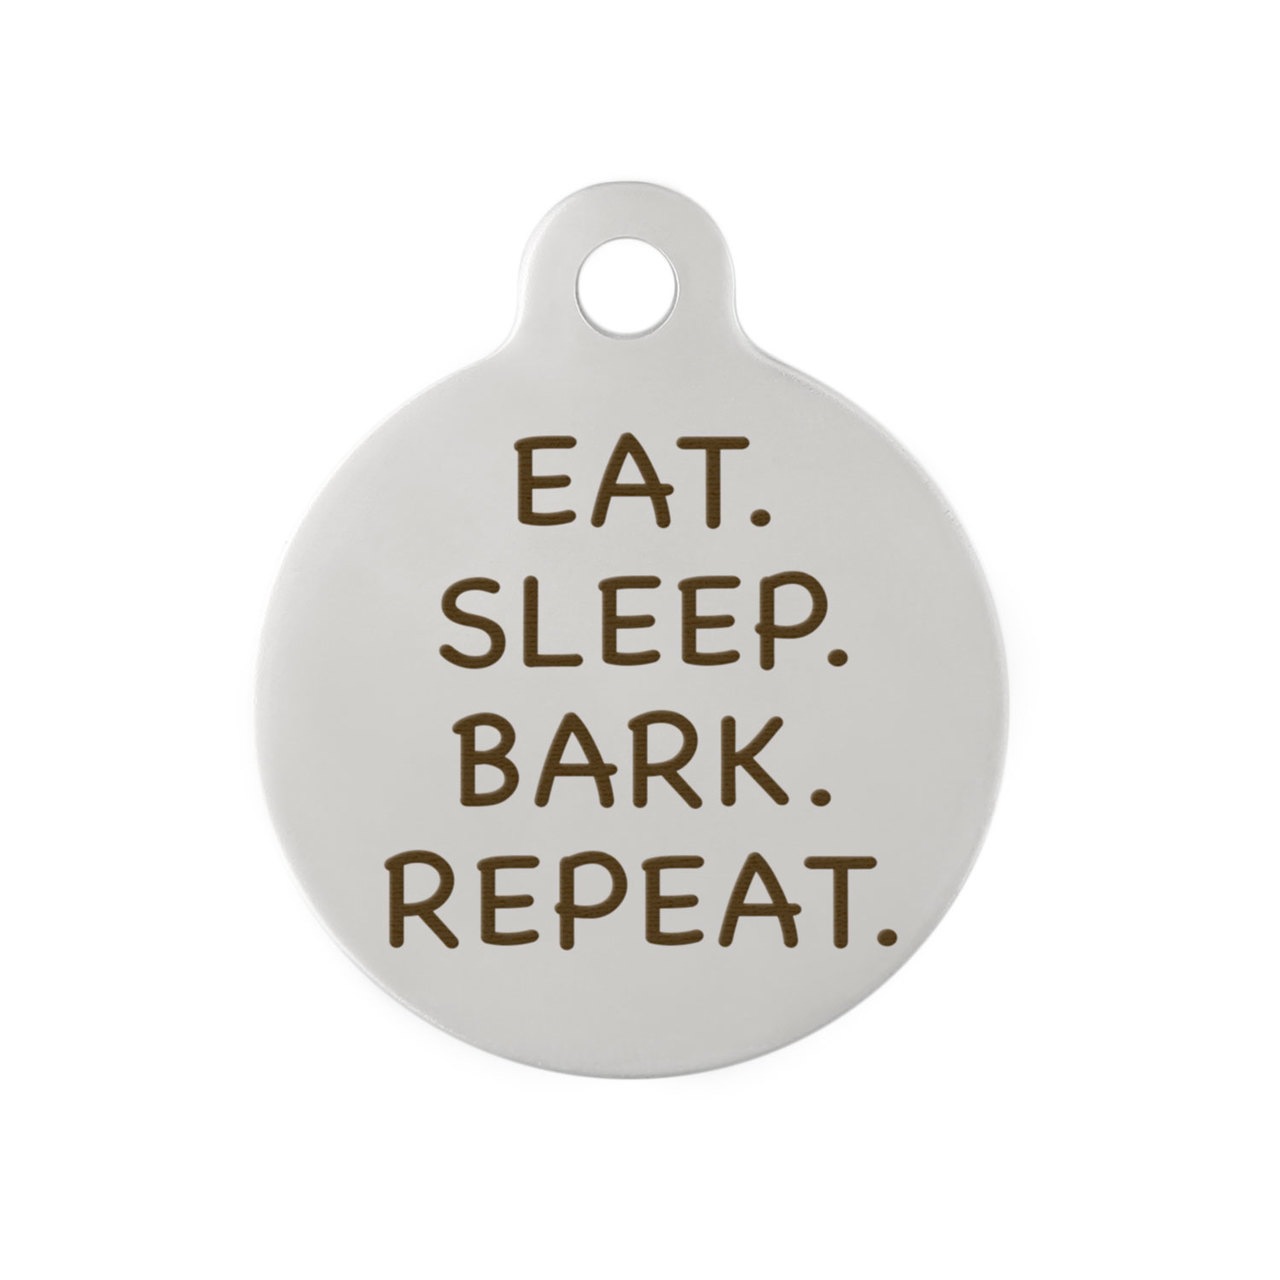 Signature Eat, Sleep, Bark Repeat Dog Tag  - Front Engraving